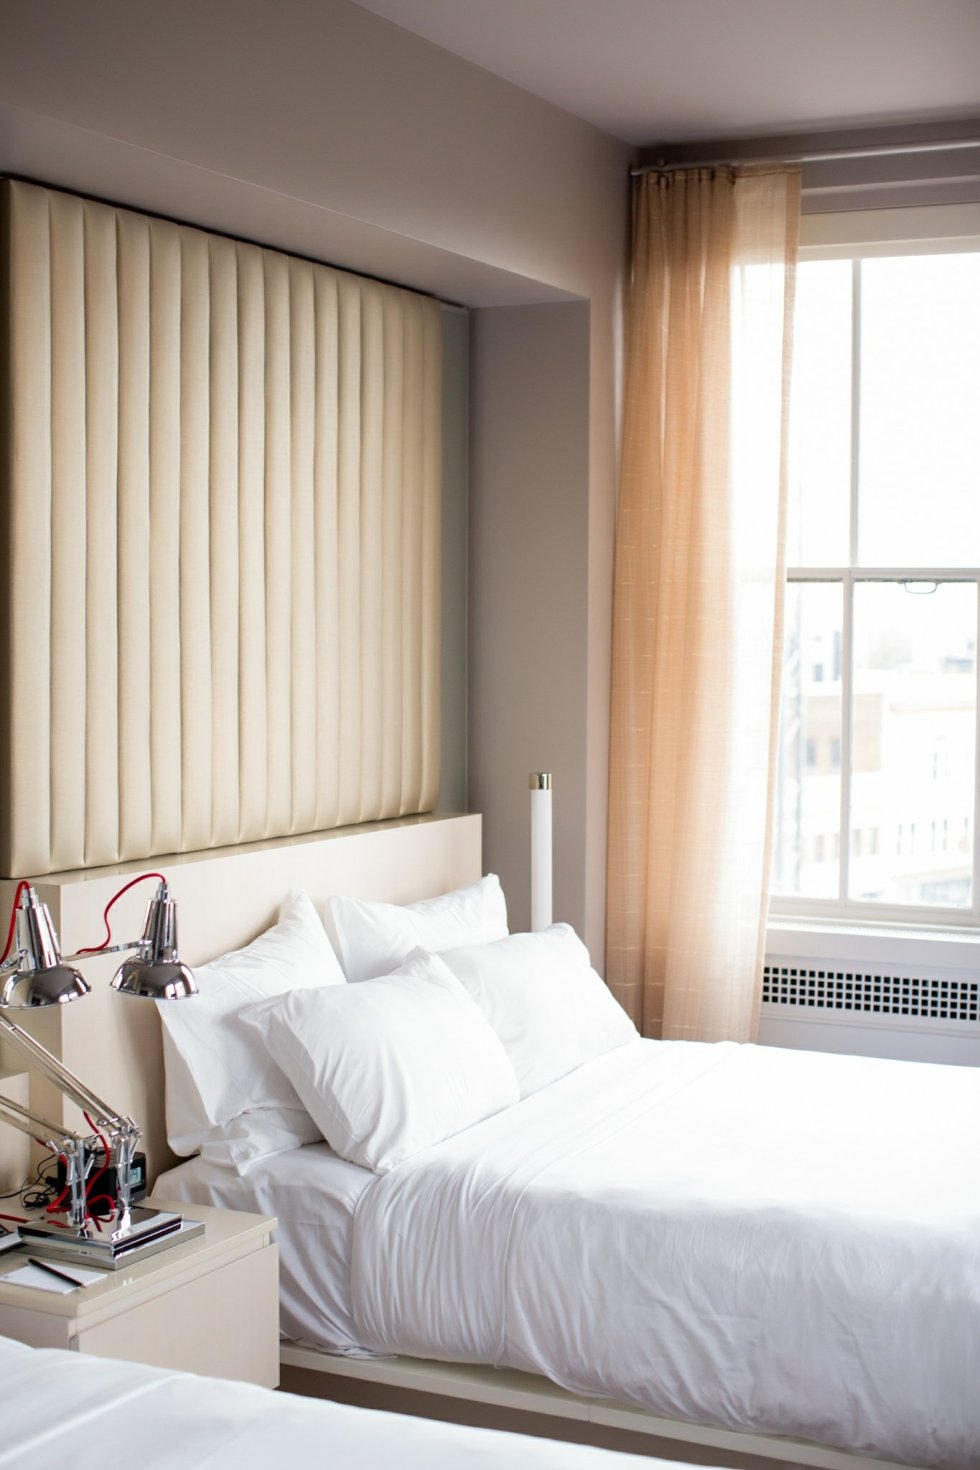 A Staycation at 21c Museum Hotel in Durham